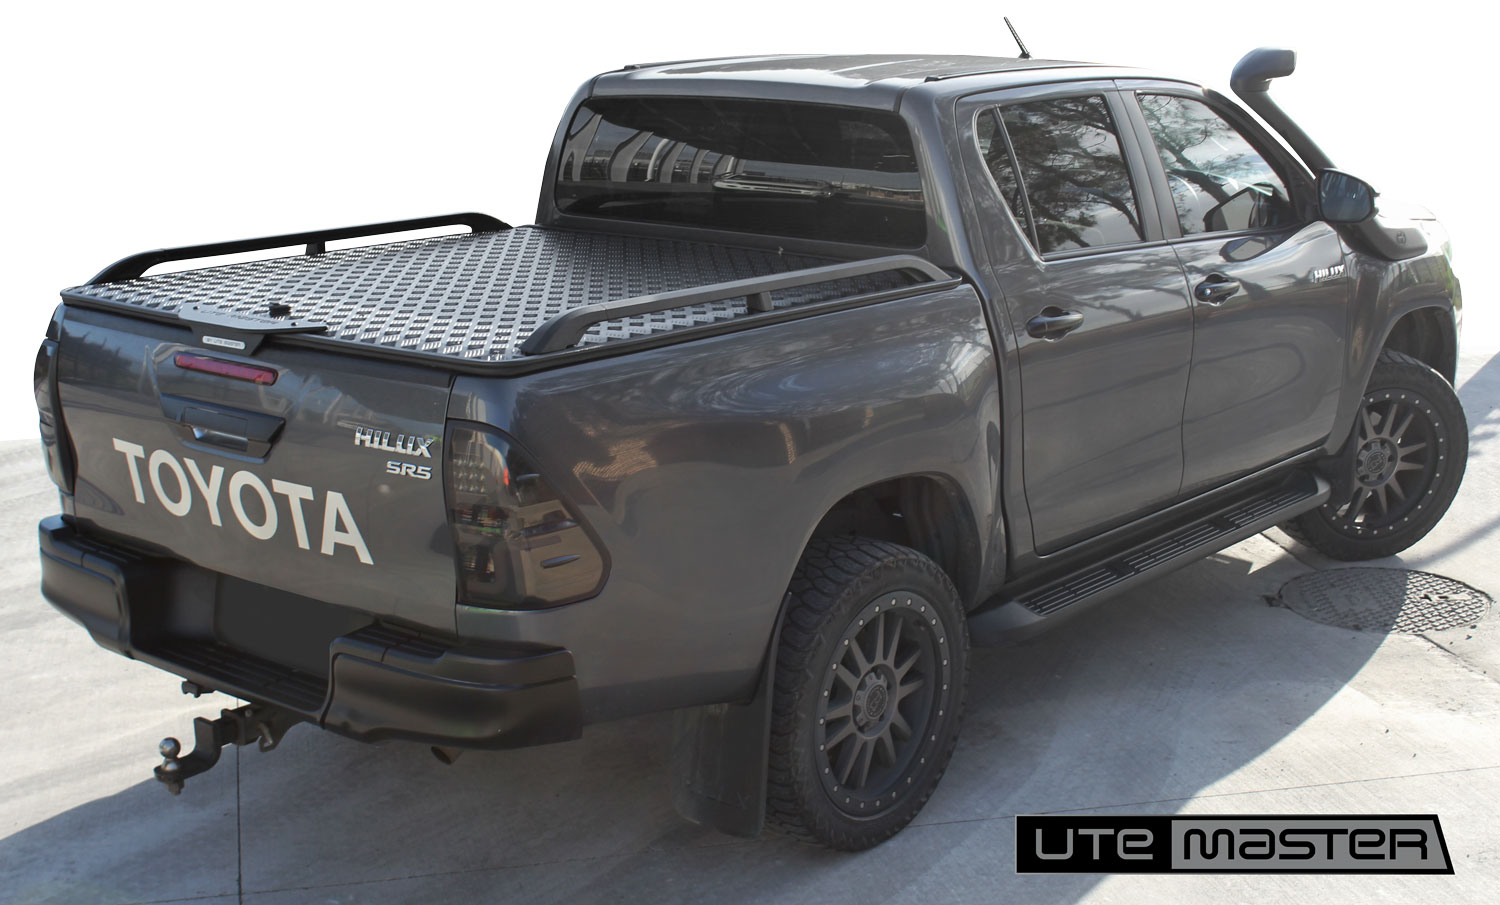 Utemaster Load Lid with Cast Aluminium Side Rails to suit Toyota Hilux Ute Hard Lid Grey Black